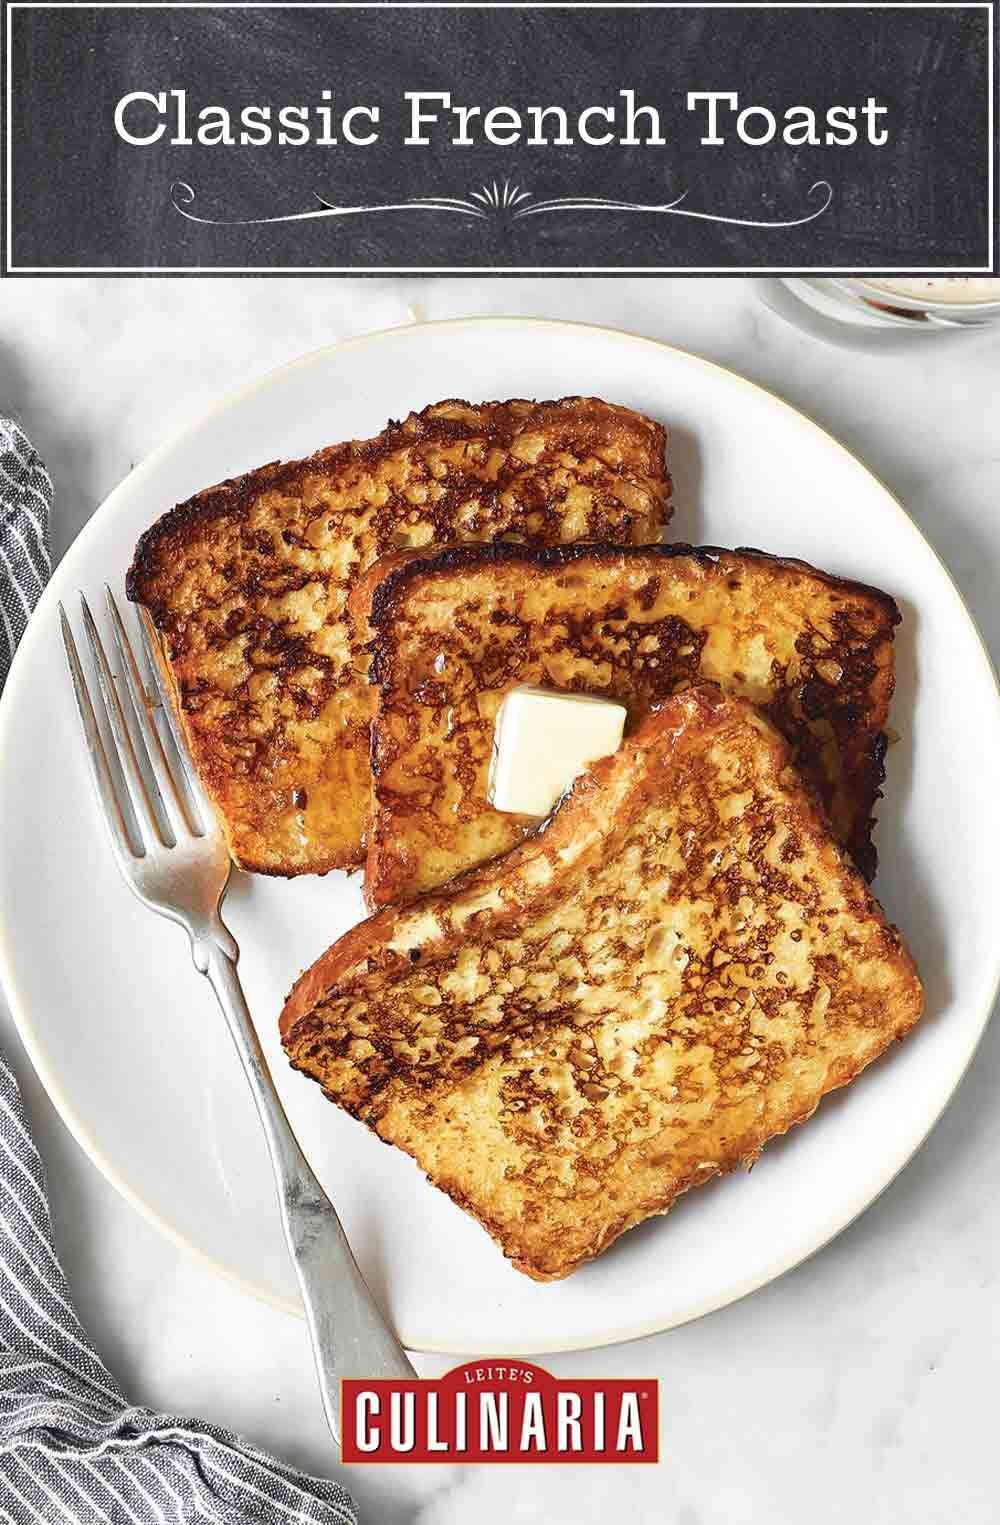 Classic French Toast Recipe In 2021 Classic French Toast Breakfast Recipes Casserole French Toast